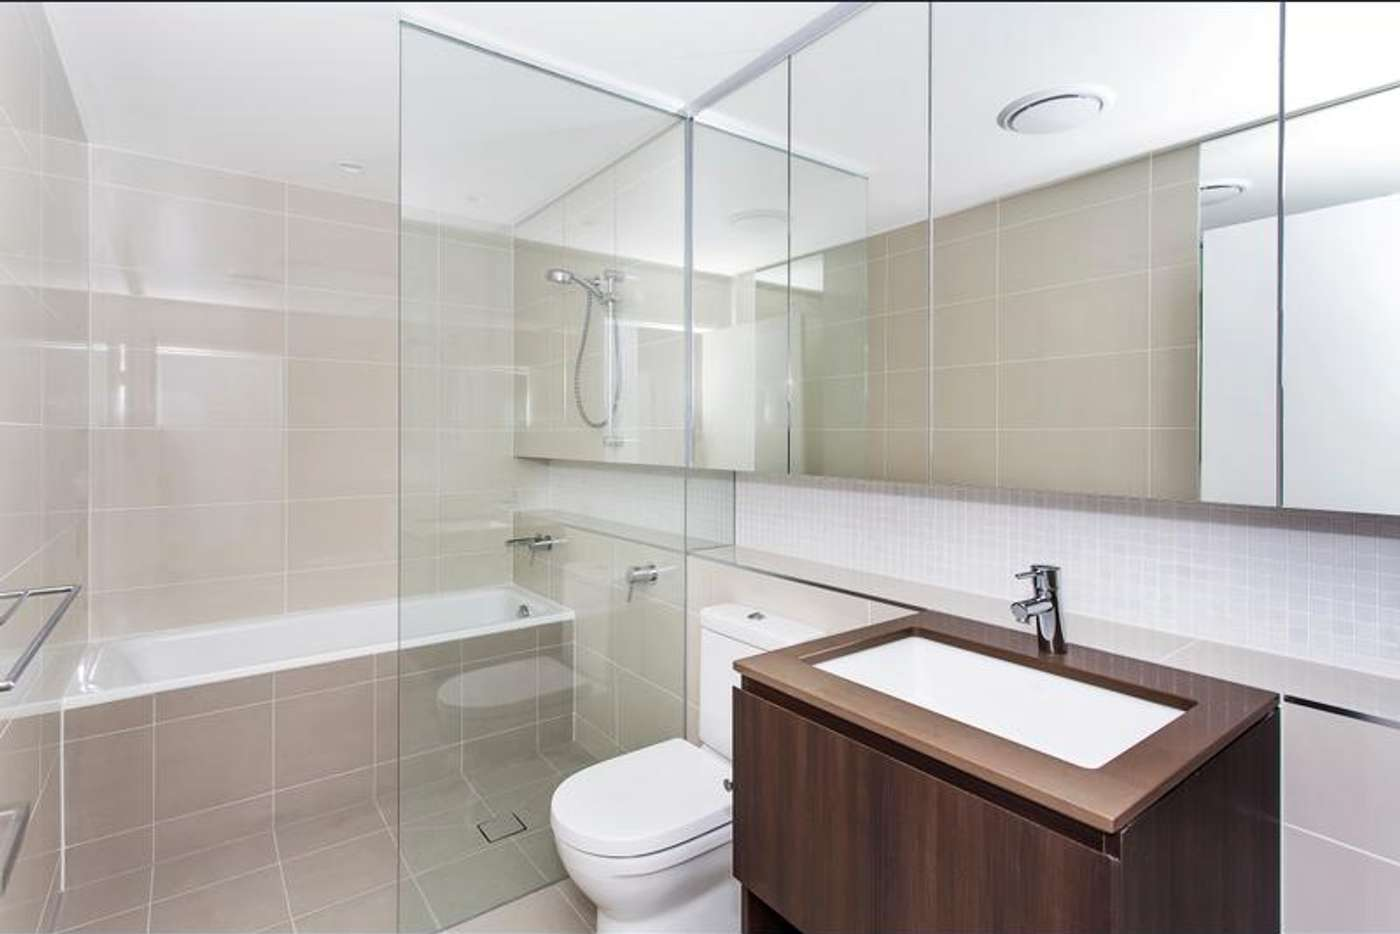 Fifth view of Homely apartment listing, 5305/331 MacArthur Avenue, Hamilton QLD 4007